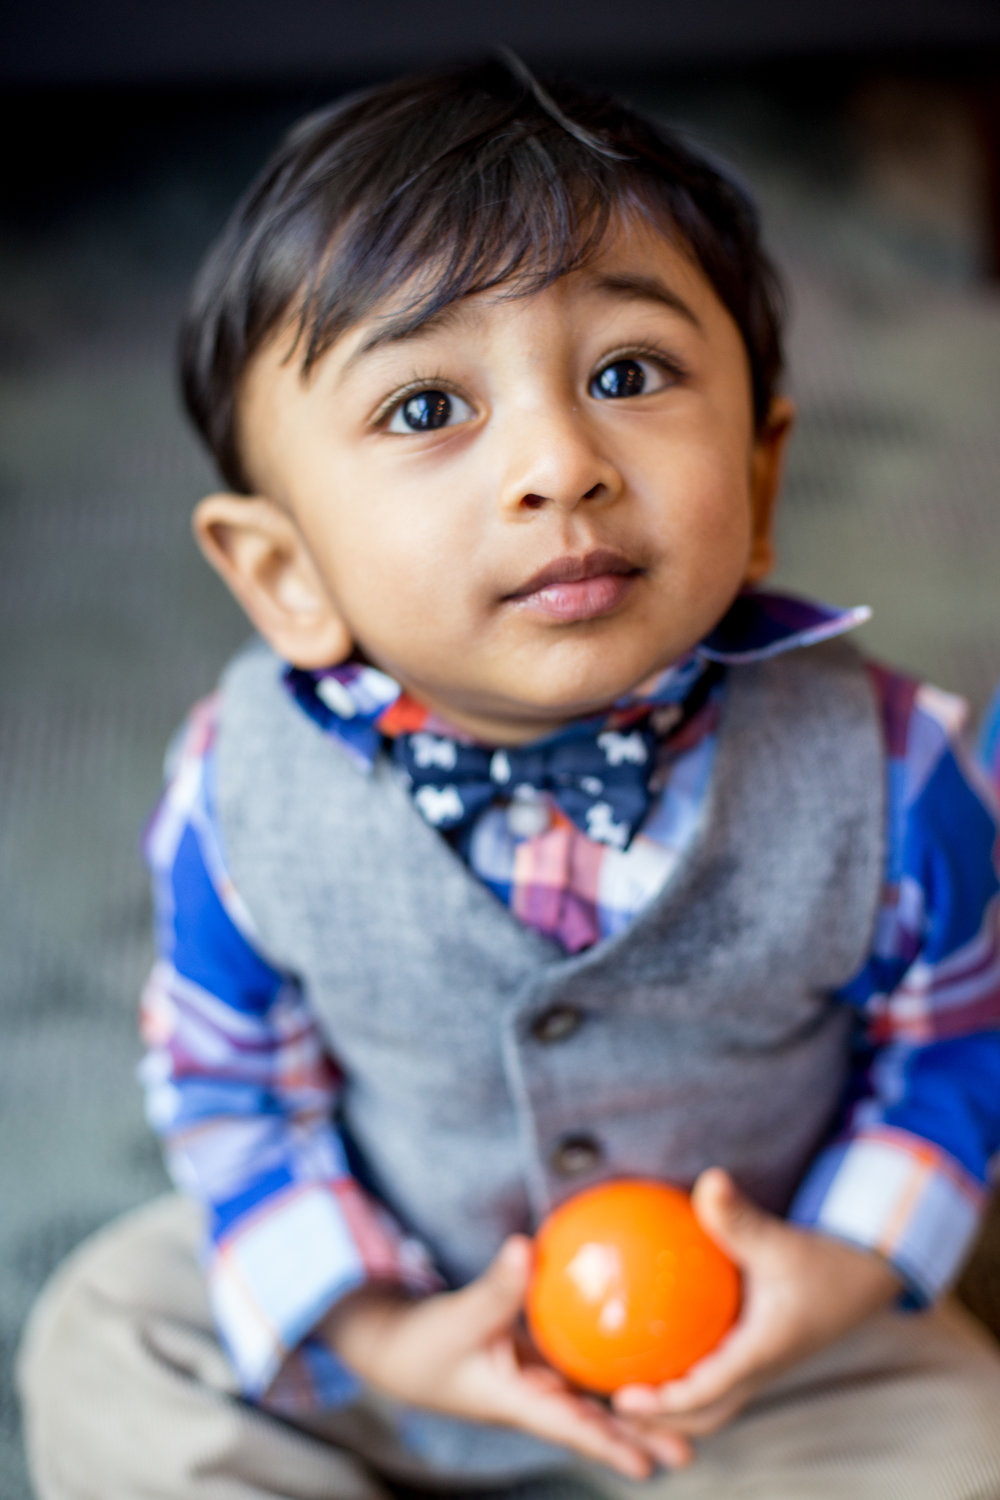 1 year old playing at his birthday party in San Francisco